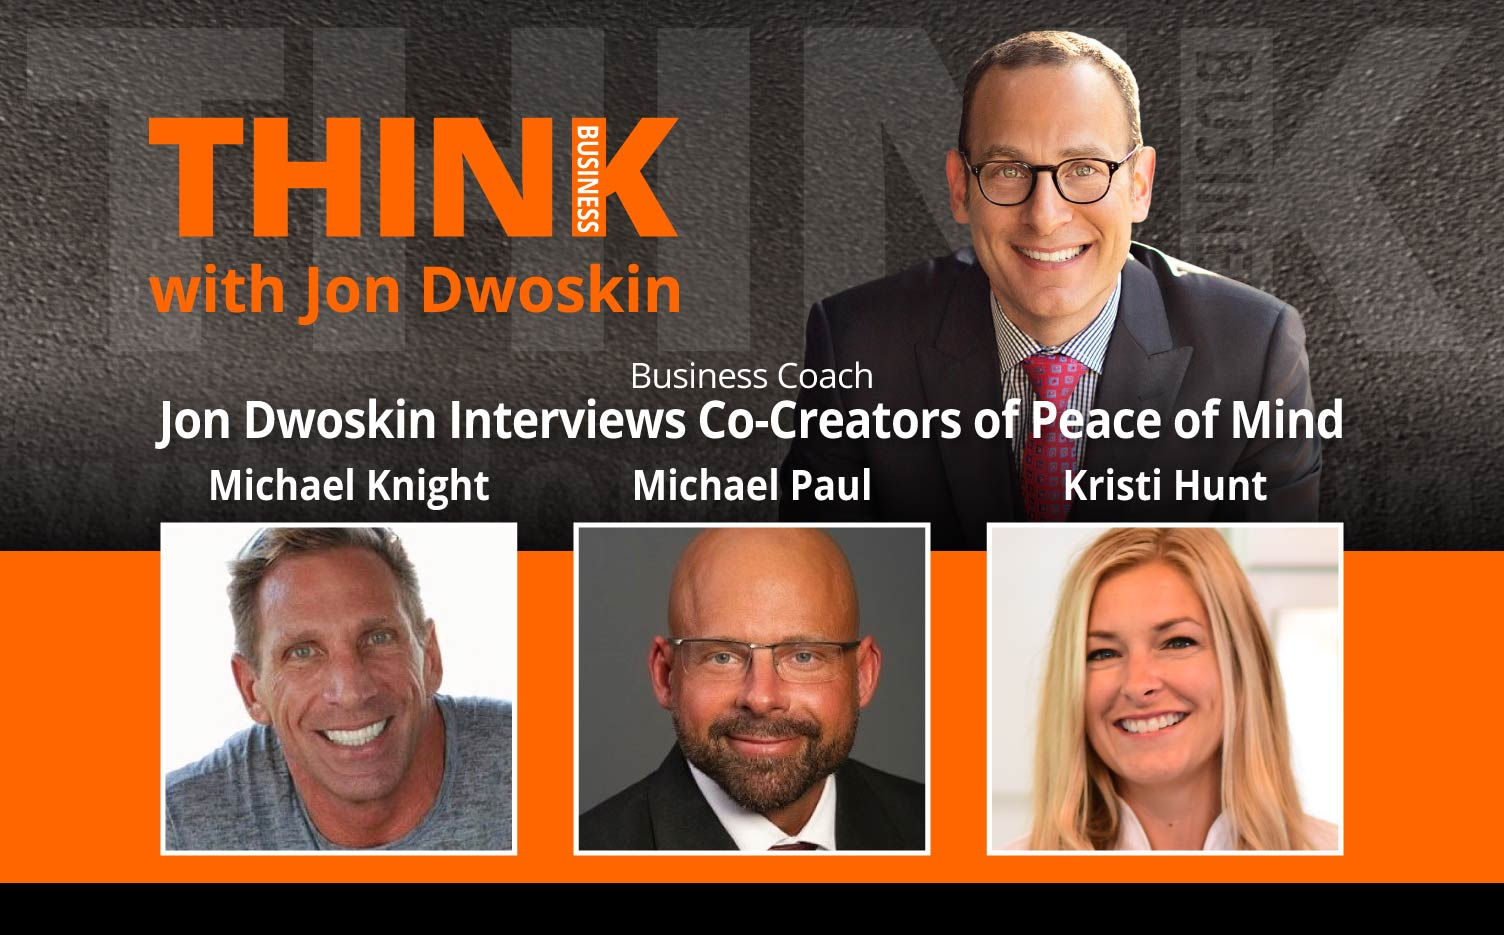 THINK Business Podcast: Jon Dwoskin Interviews Michael Knight, Michael Paul and Kristi Hunt, Co-Creators of Peace of Mind